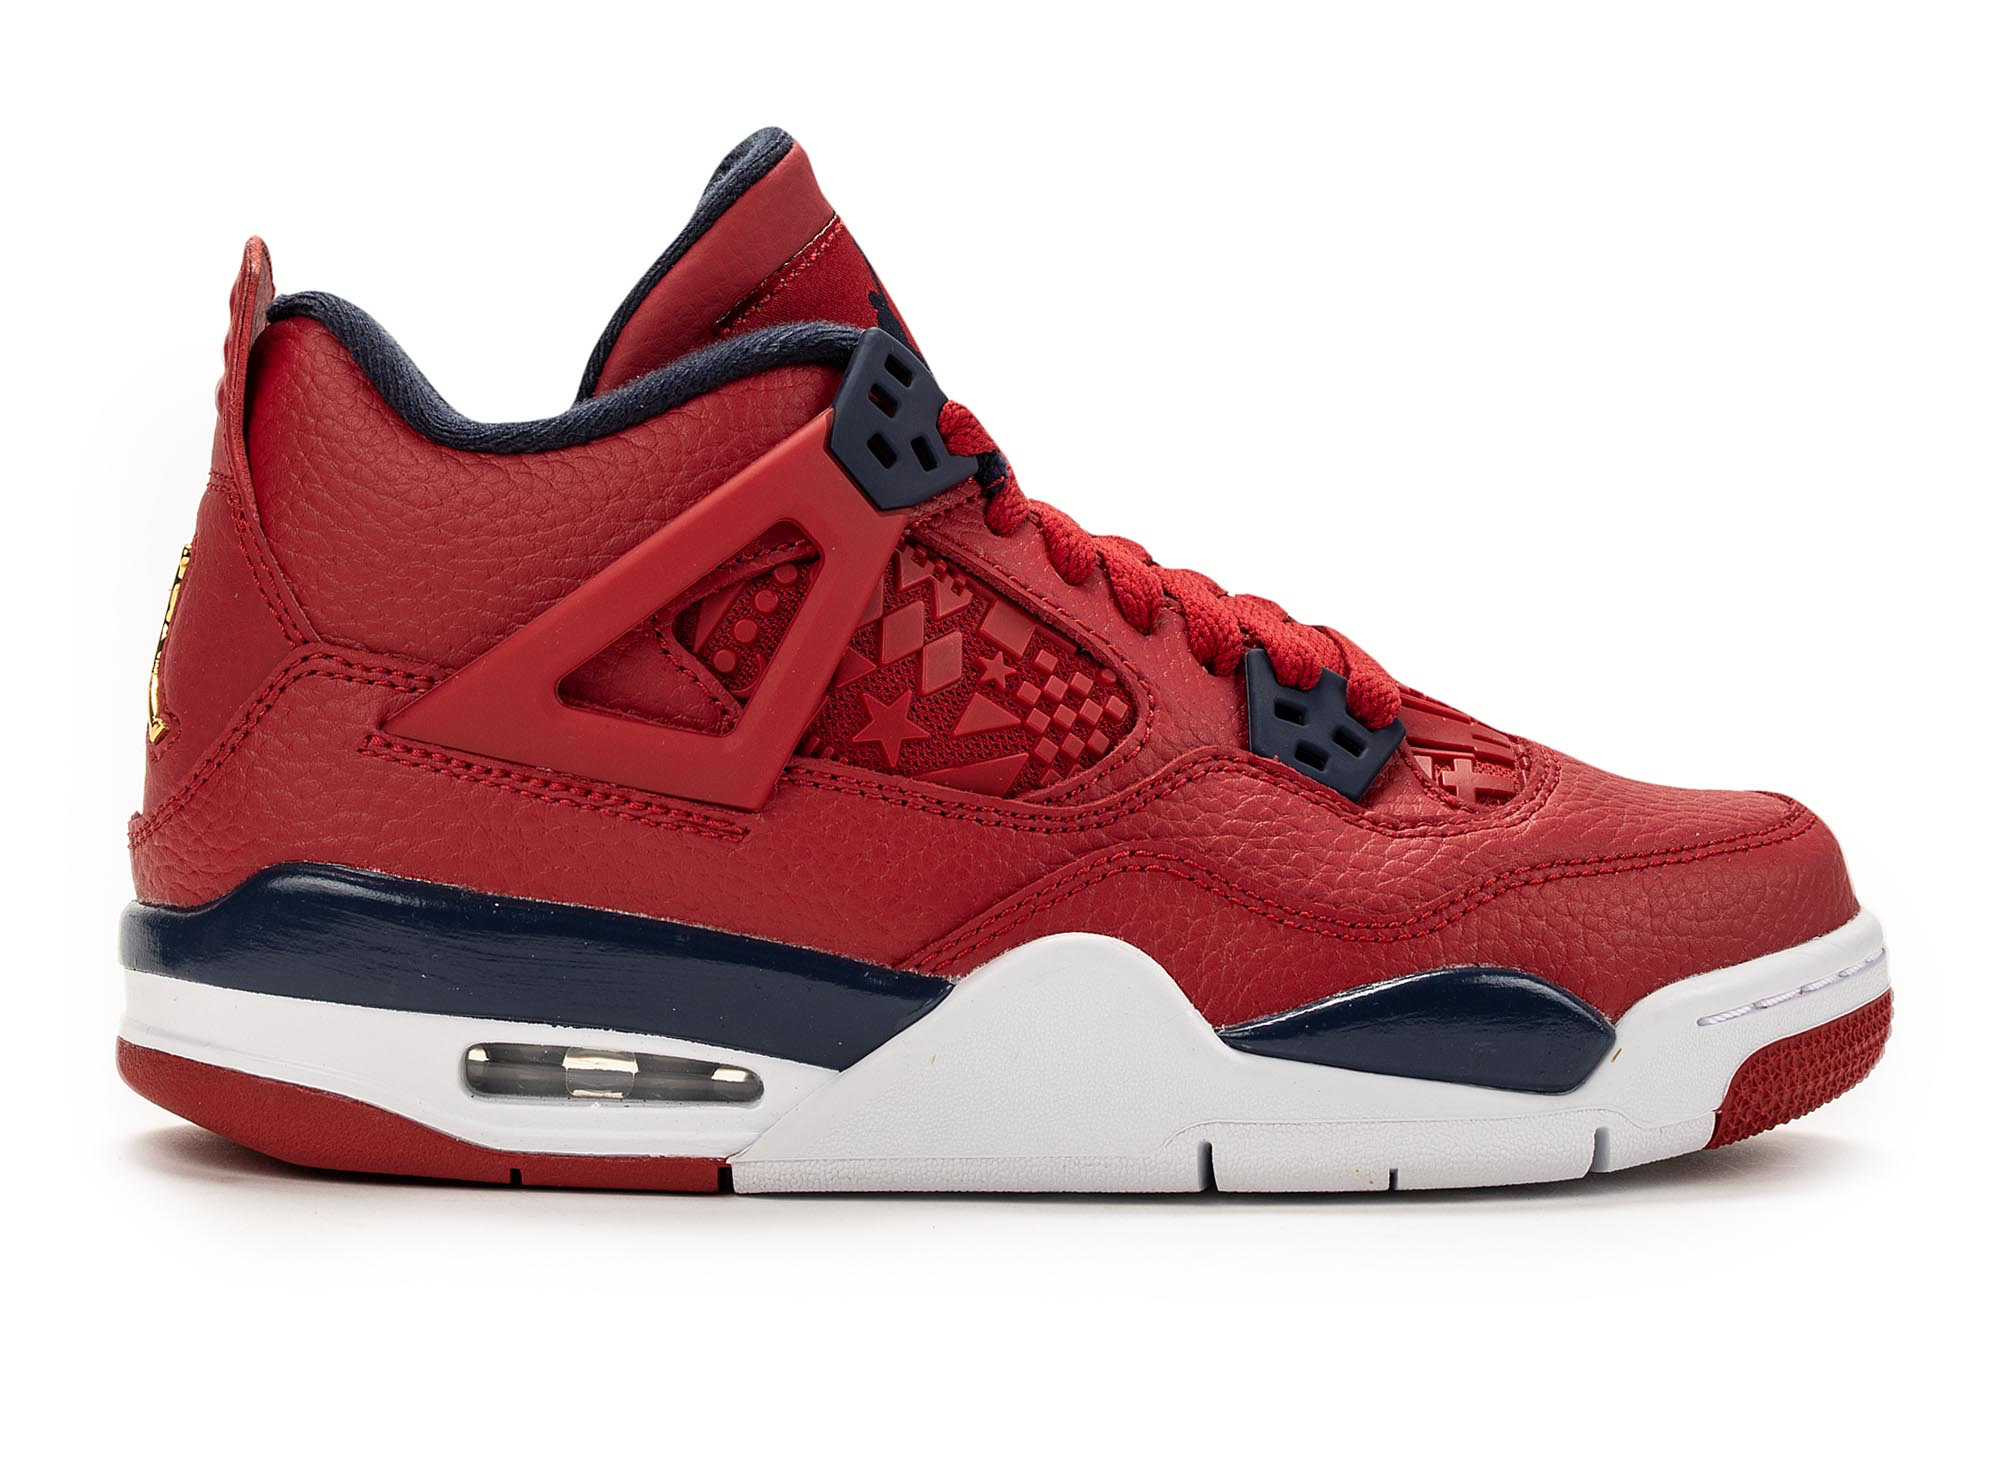 Air Jordan 4 Retro 'Fiba' GS